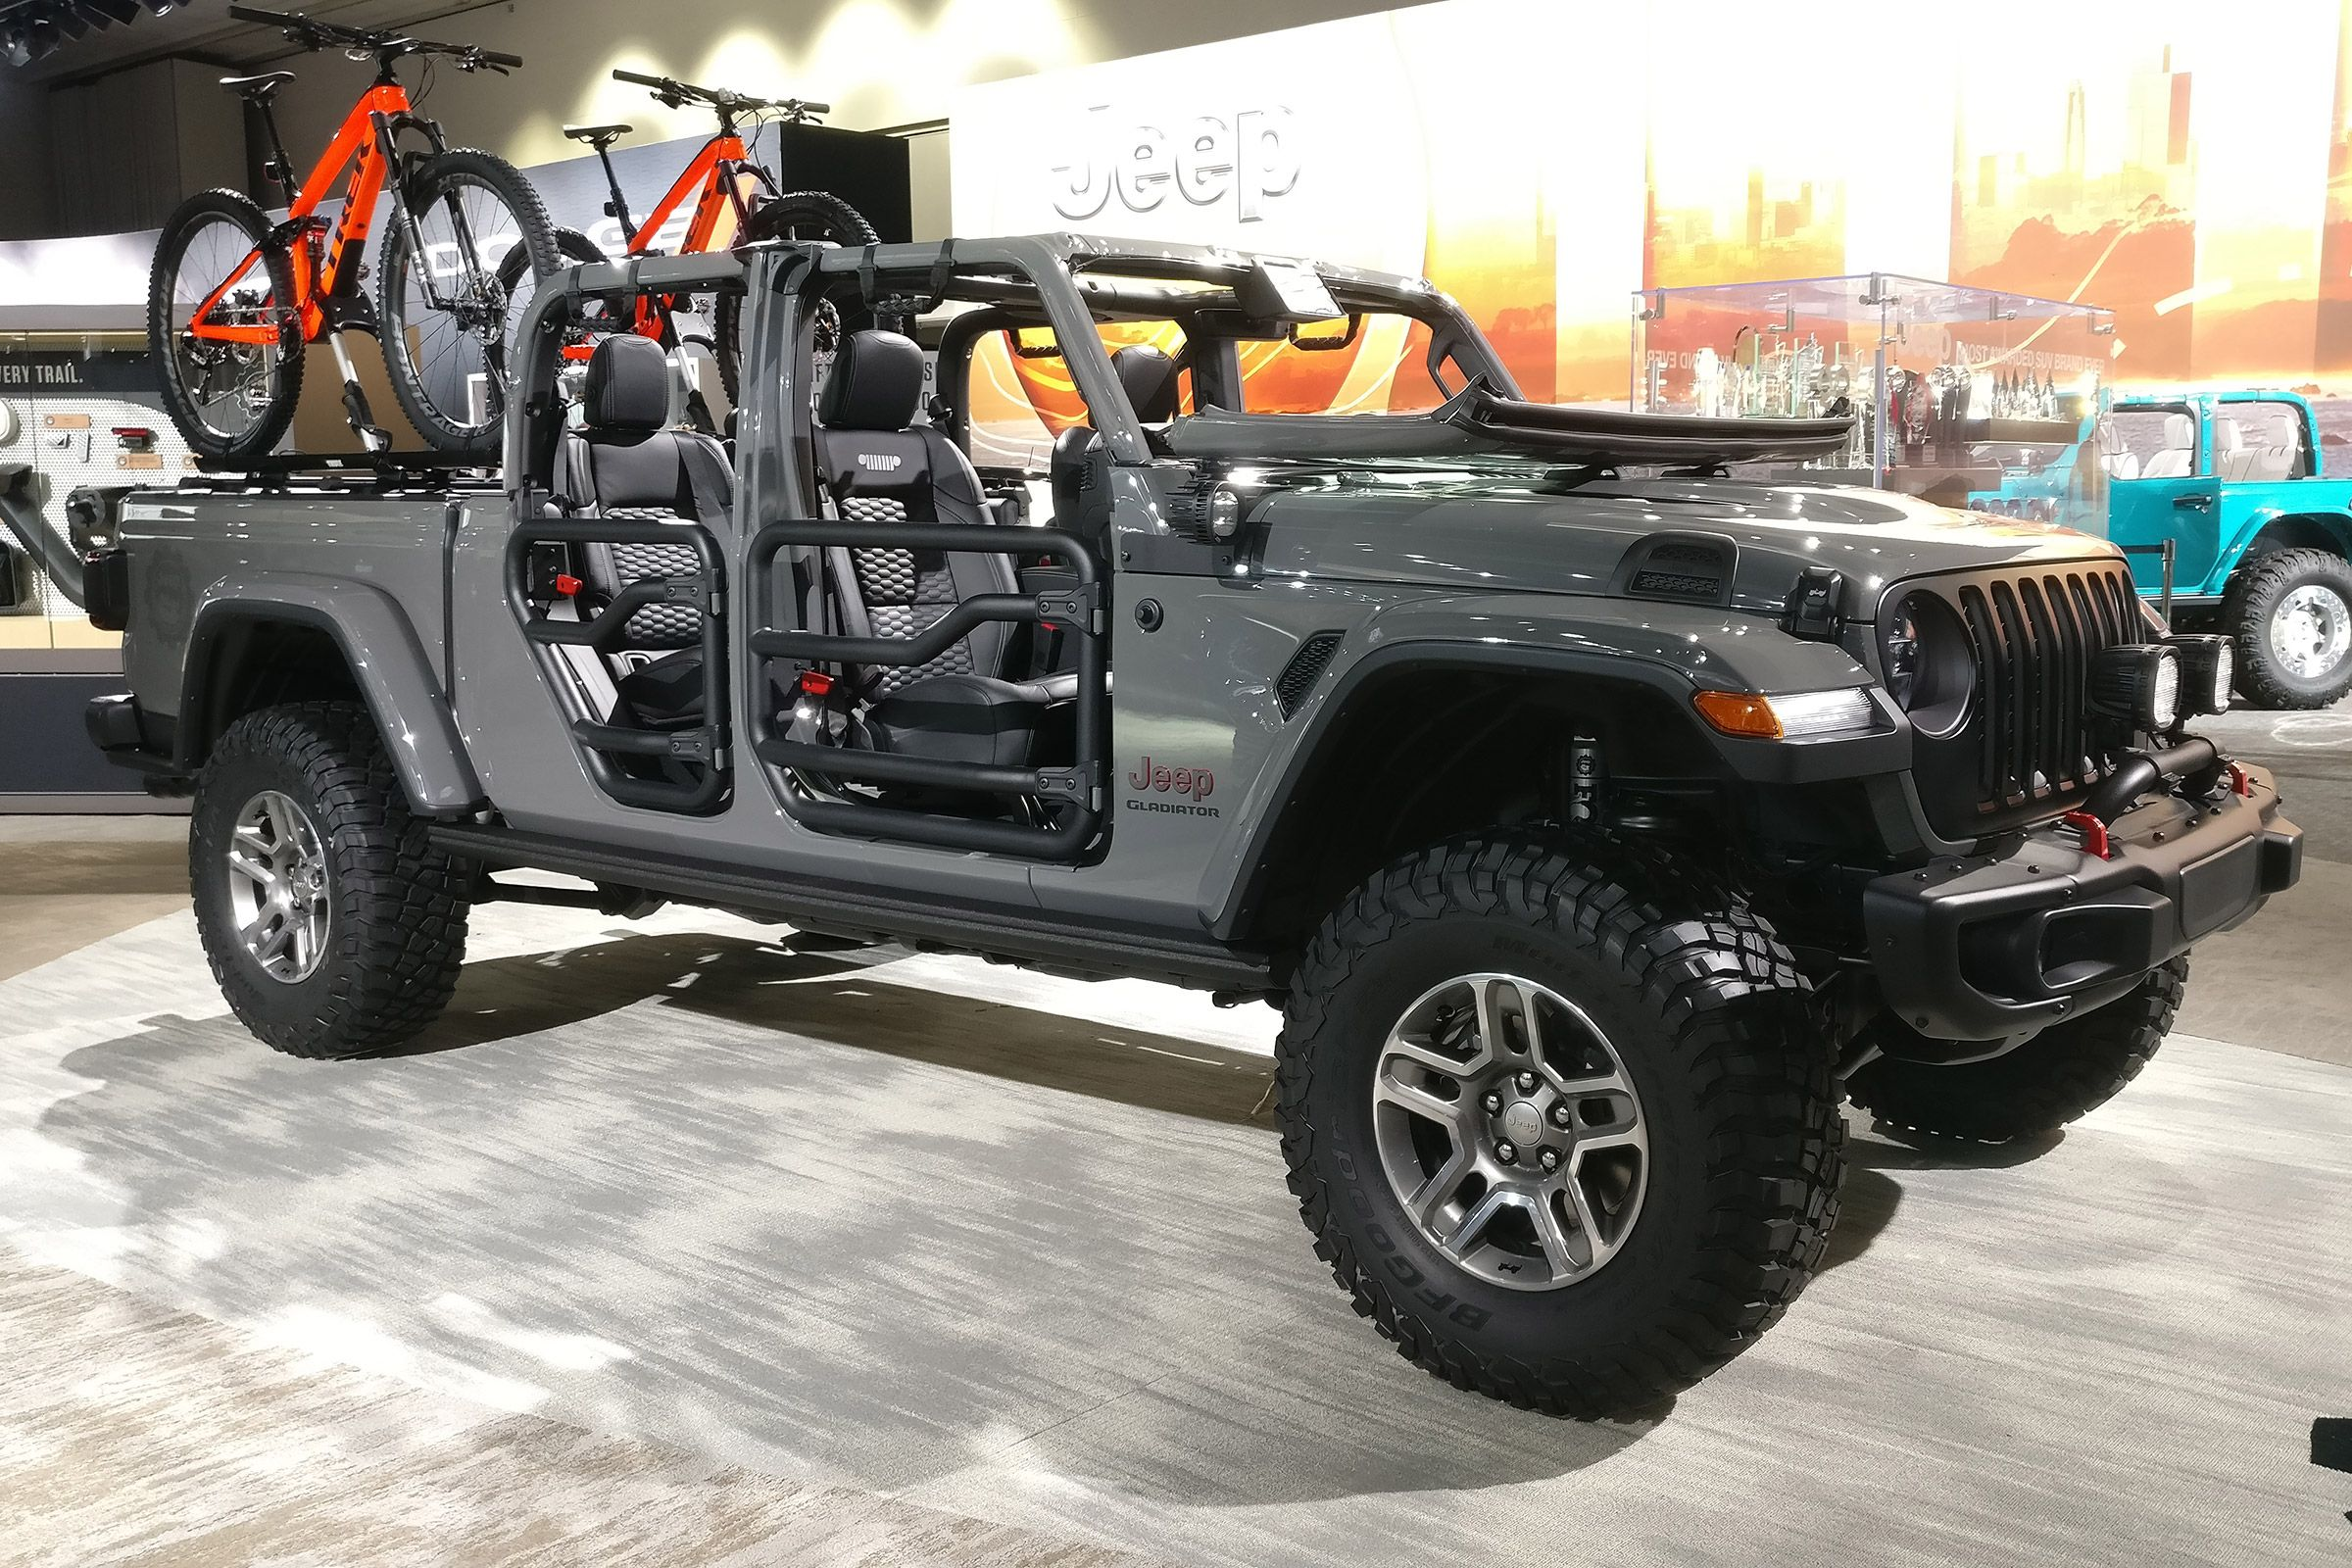 The Rugged Jeep Gladiator Pick Up Launches In America Late Next Year Before Arriving In Europe In 2020 Jeep Gladiator New Jeep Wrangler Jeep Wrangler